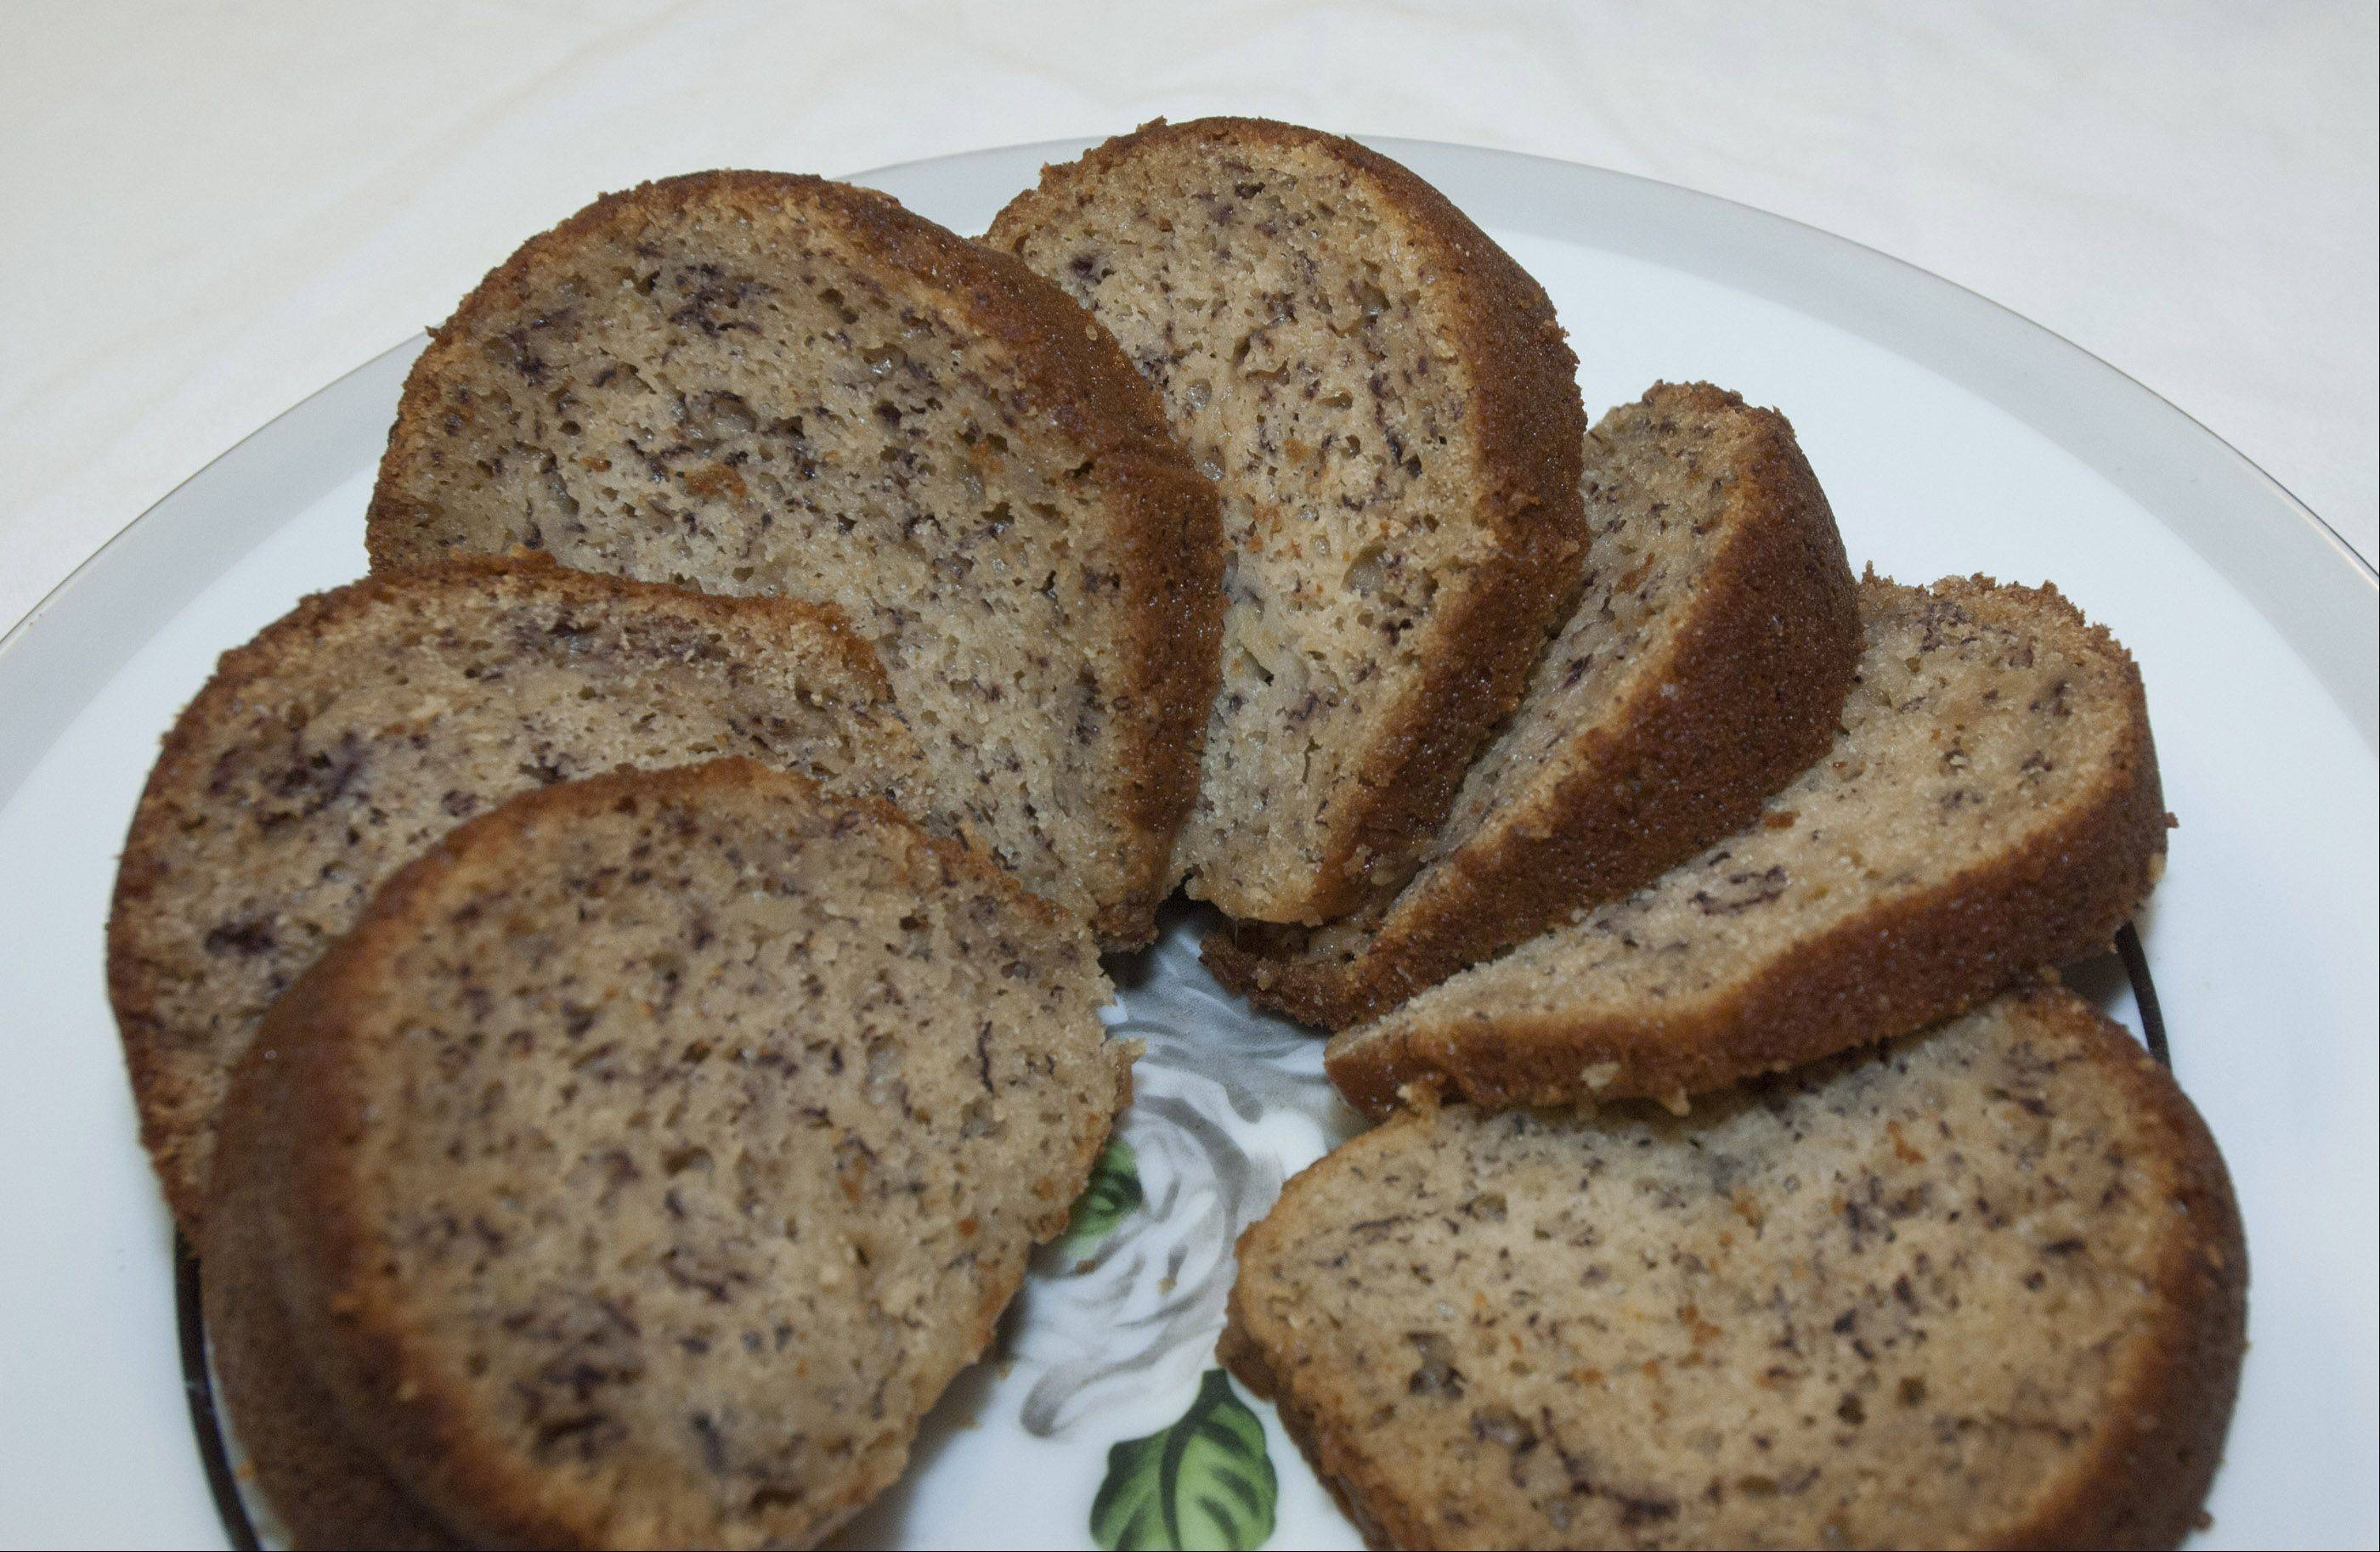 Baking secrets: Whole wheat flour makes surprise appearance in cake